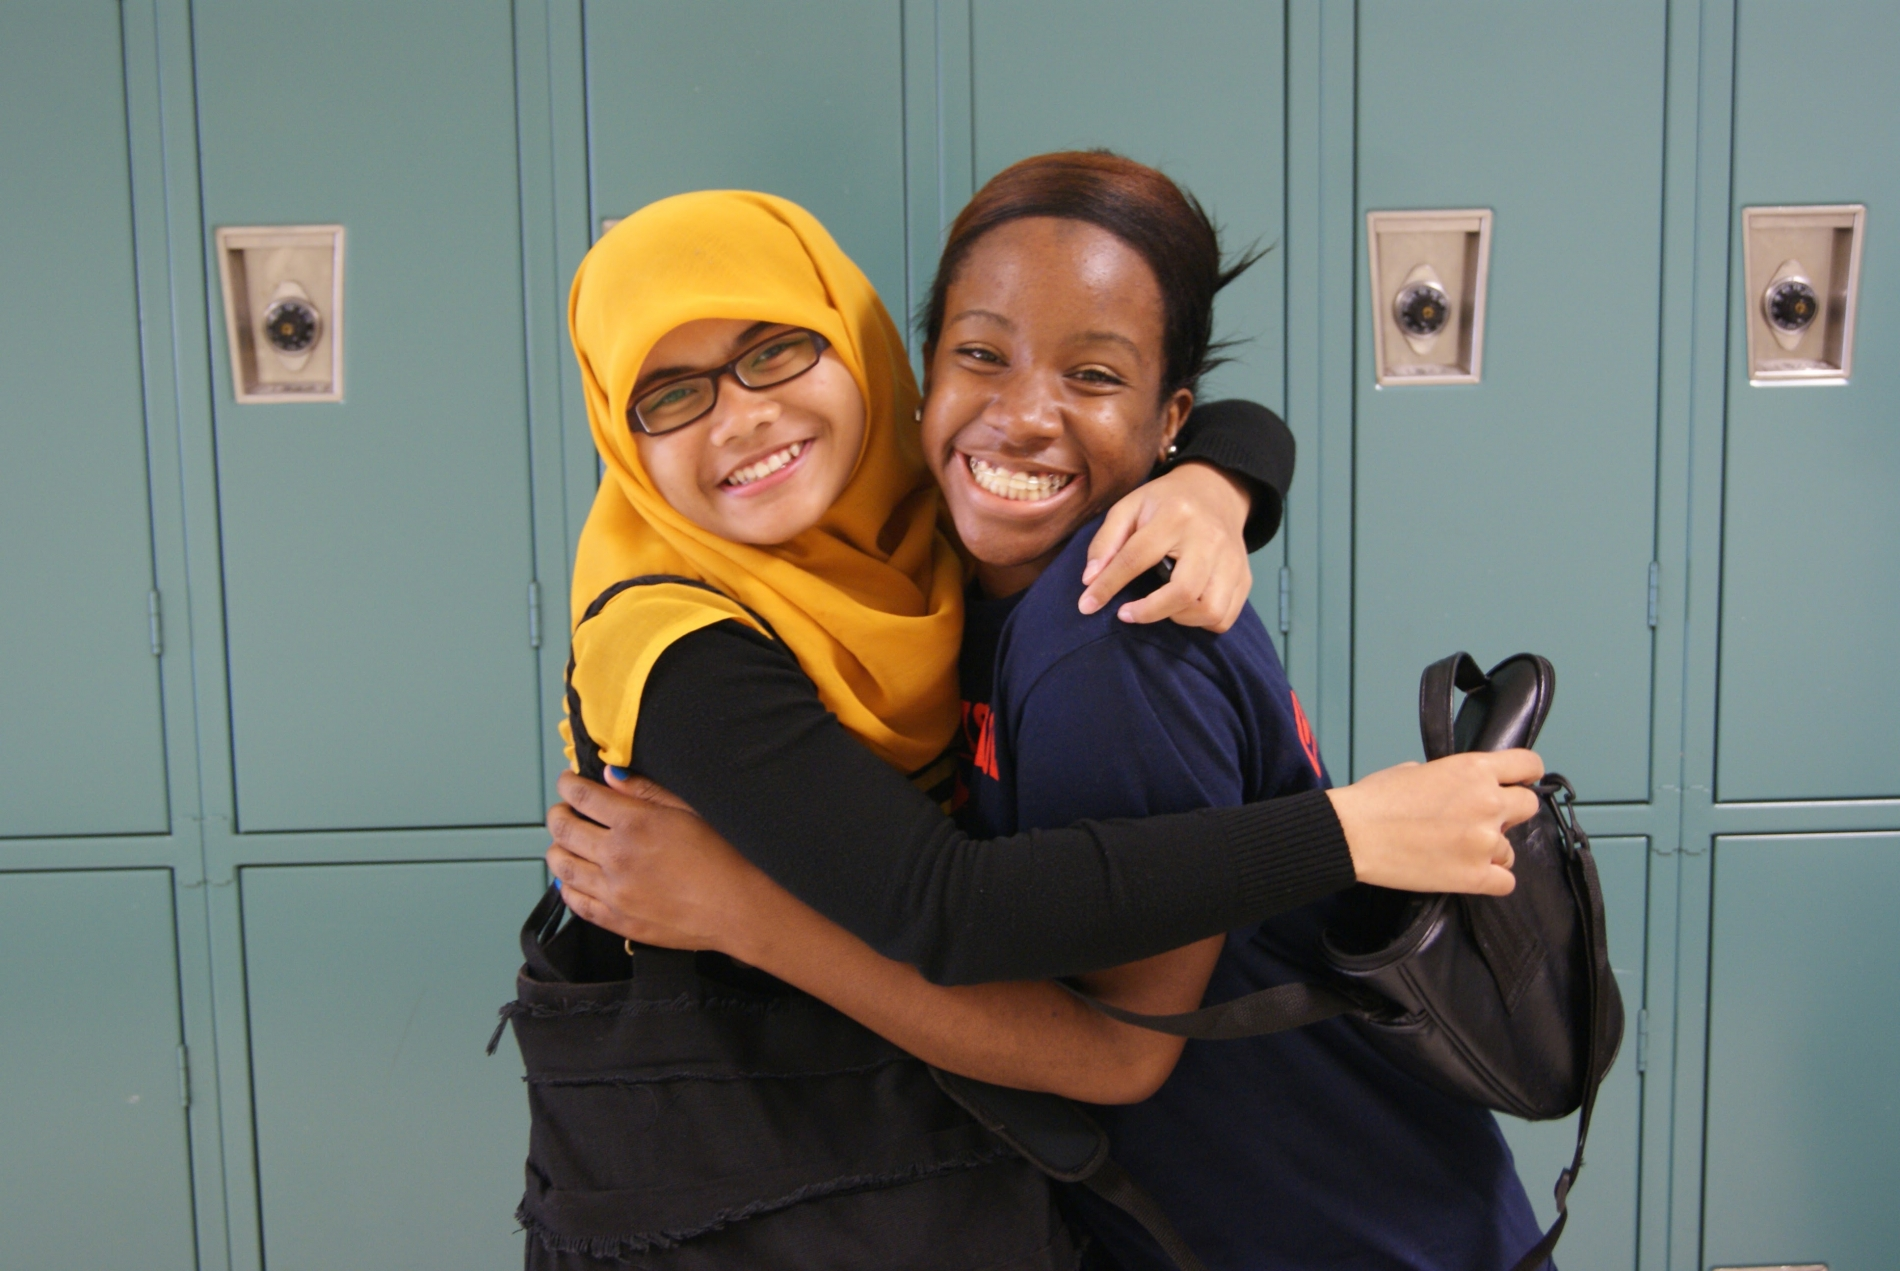 PAX Exchange Student from Indonesia with American School Friend